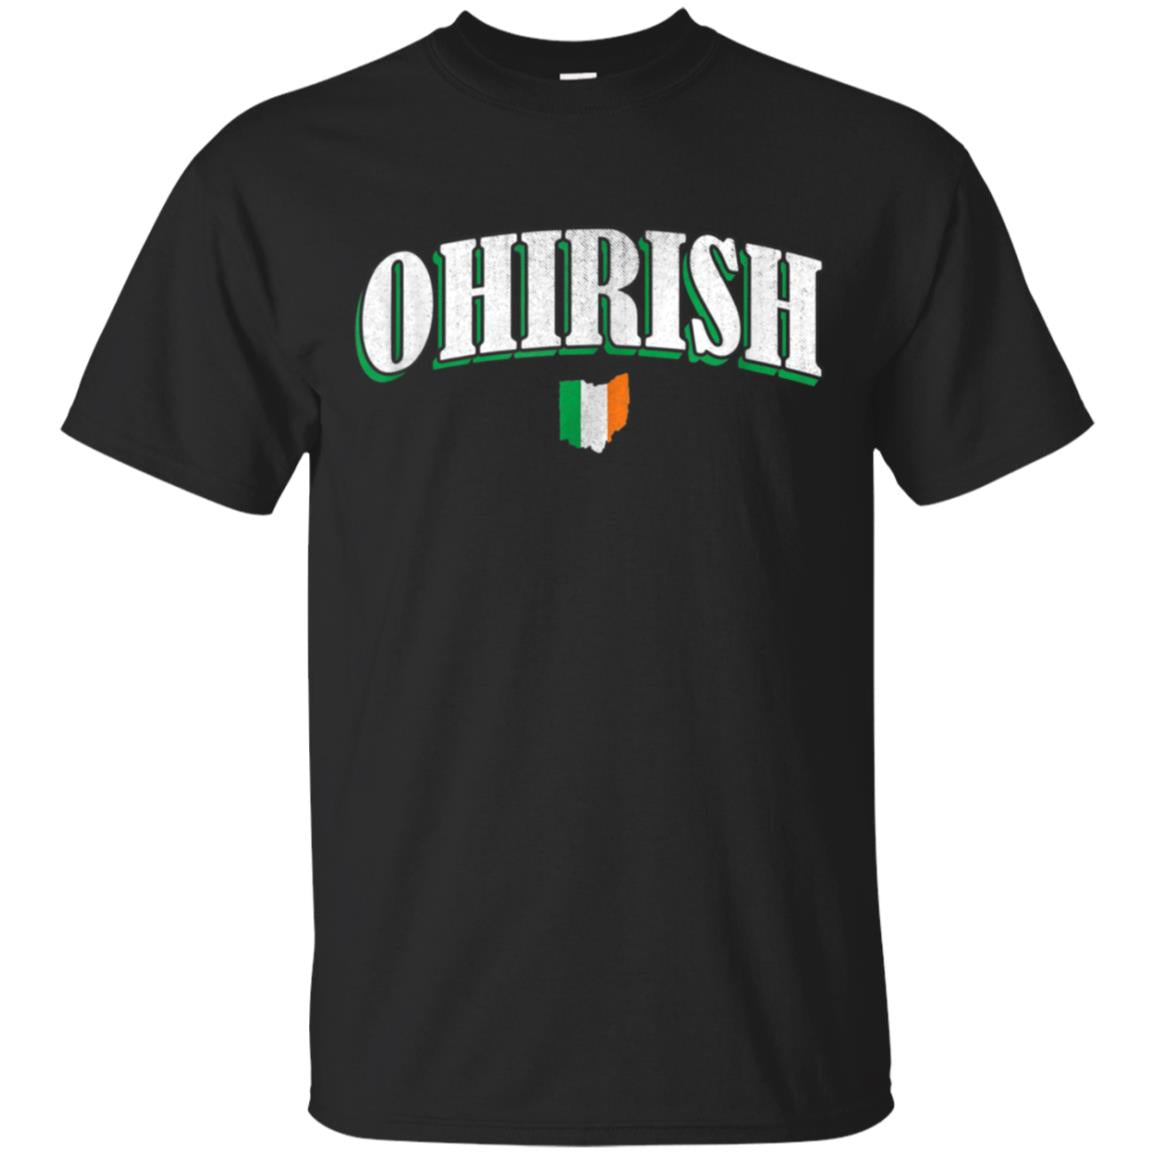 Ohirish Ohio Saint Patrick's Day Irish Shirt 99promocode